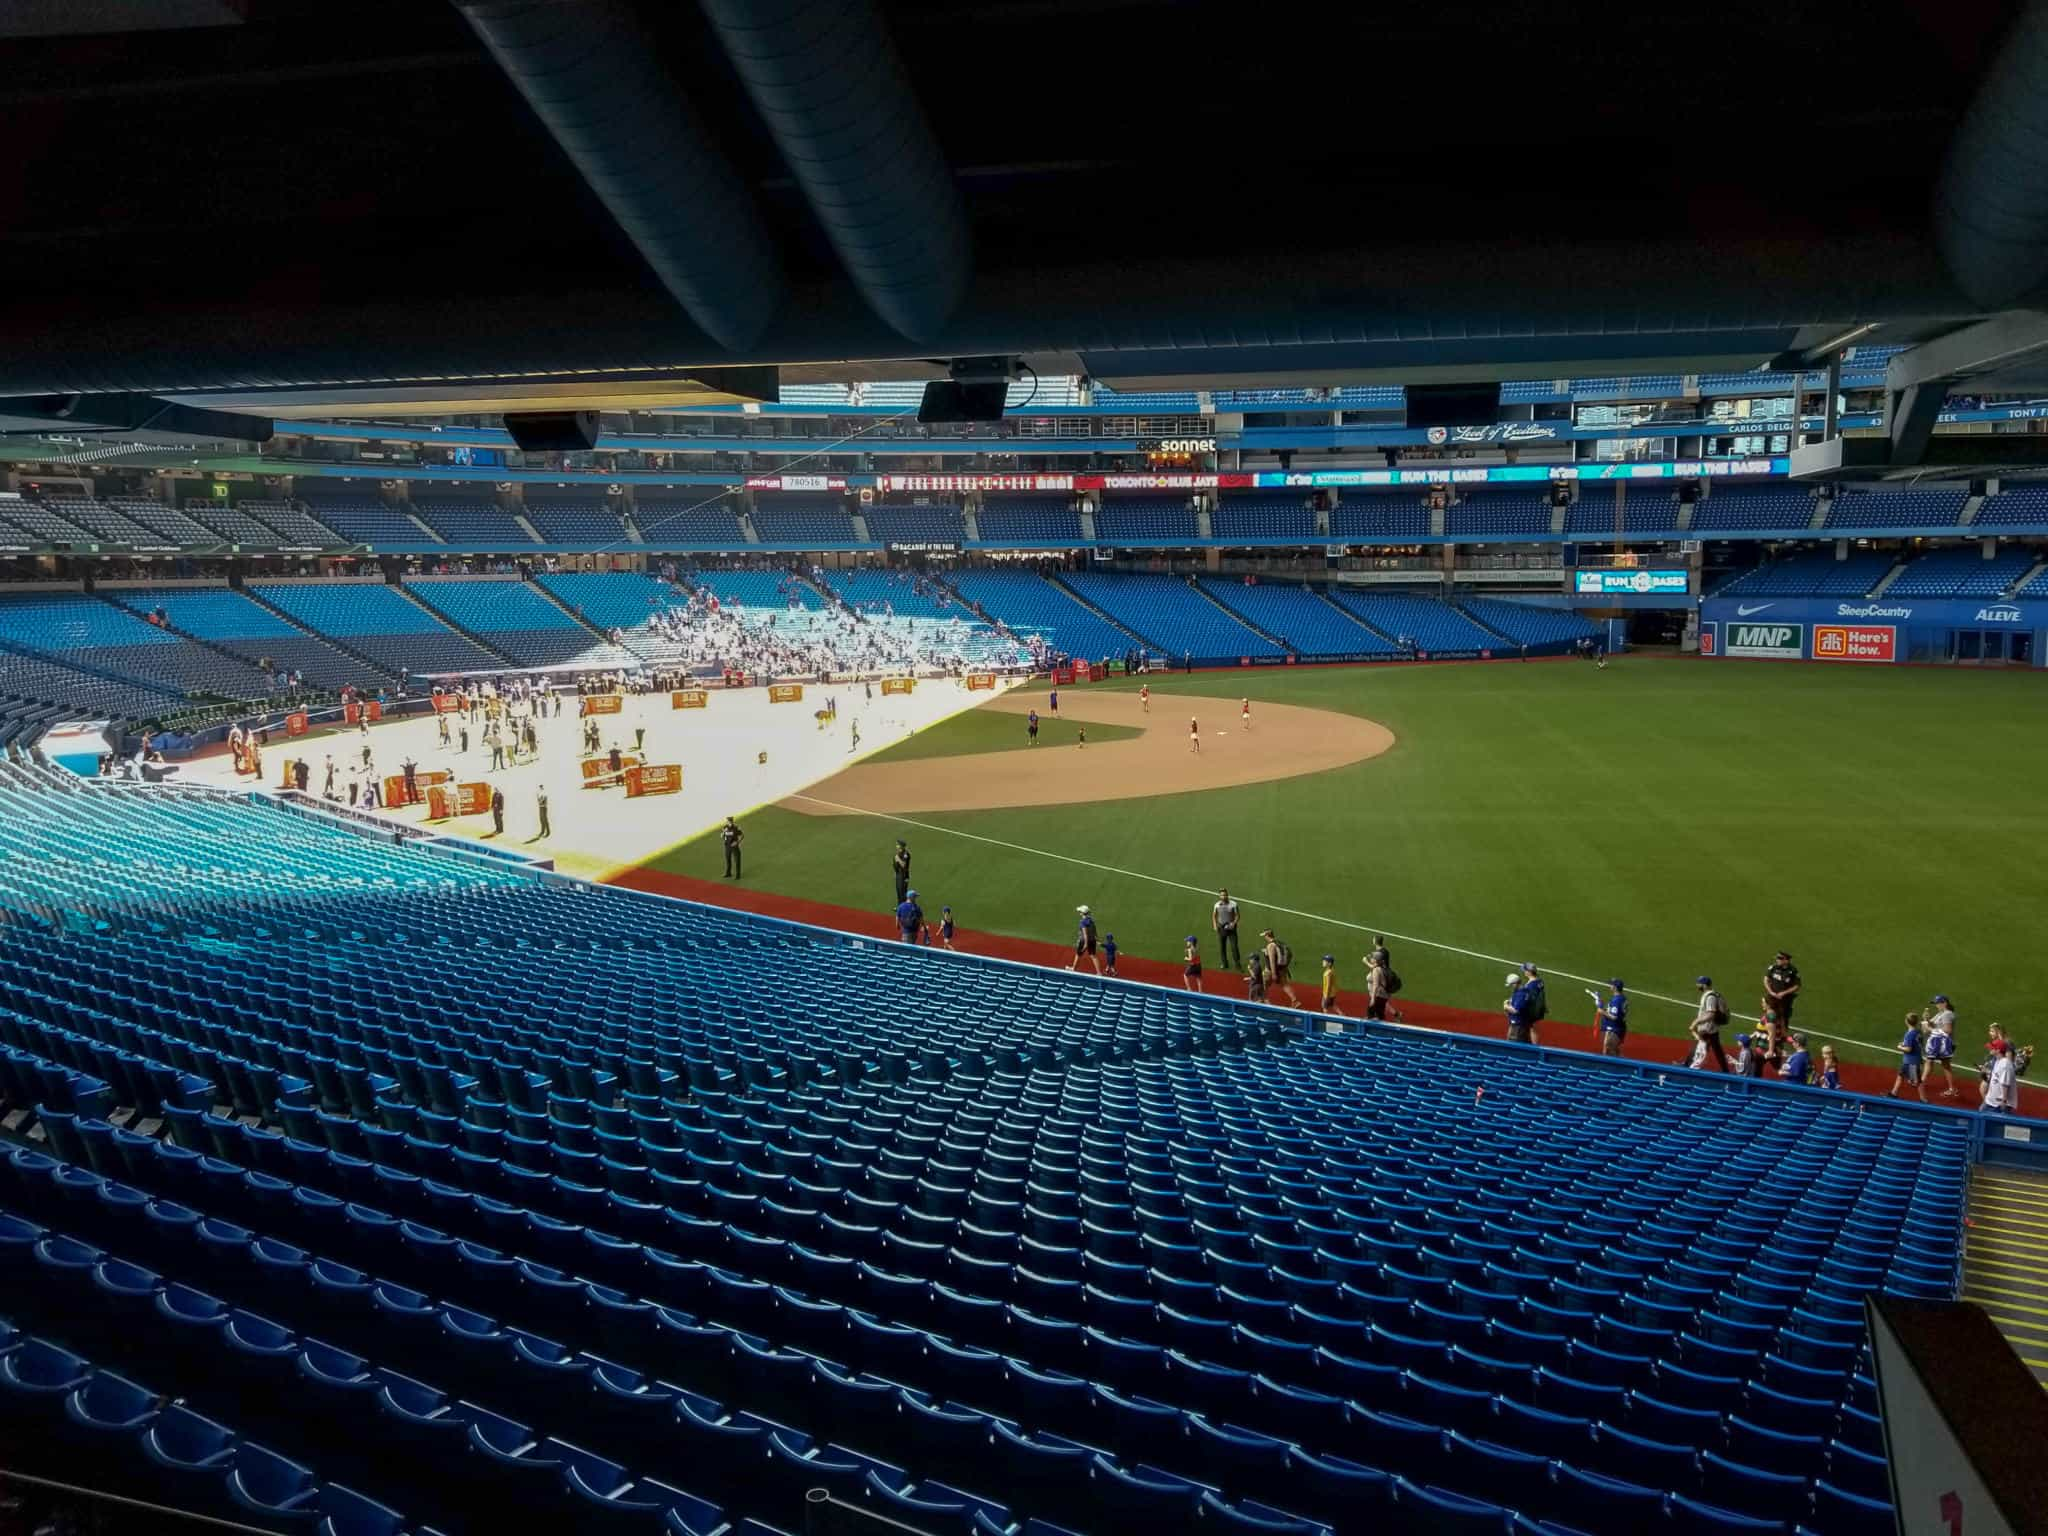 The Blue Jays Home Opener is one of the things to do in Toronto in spring